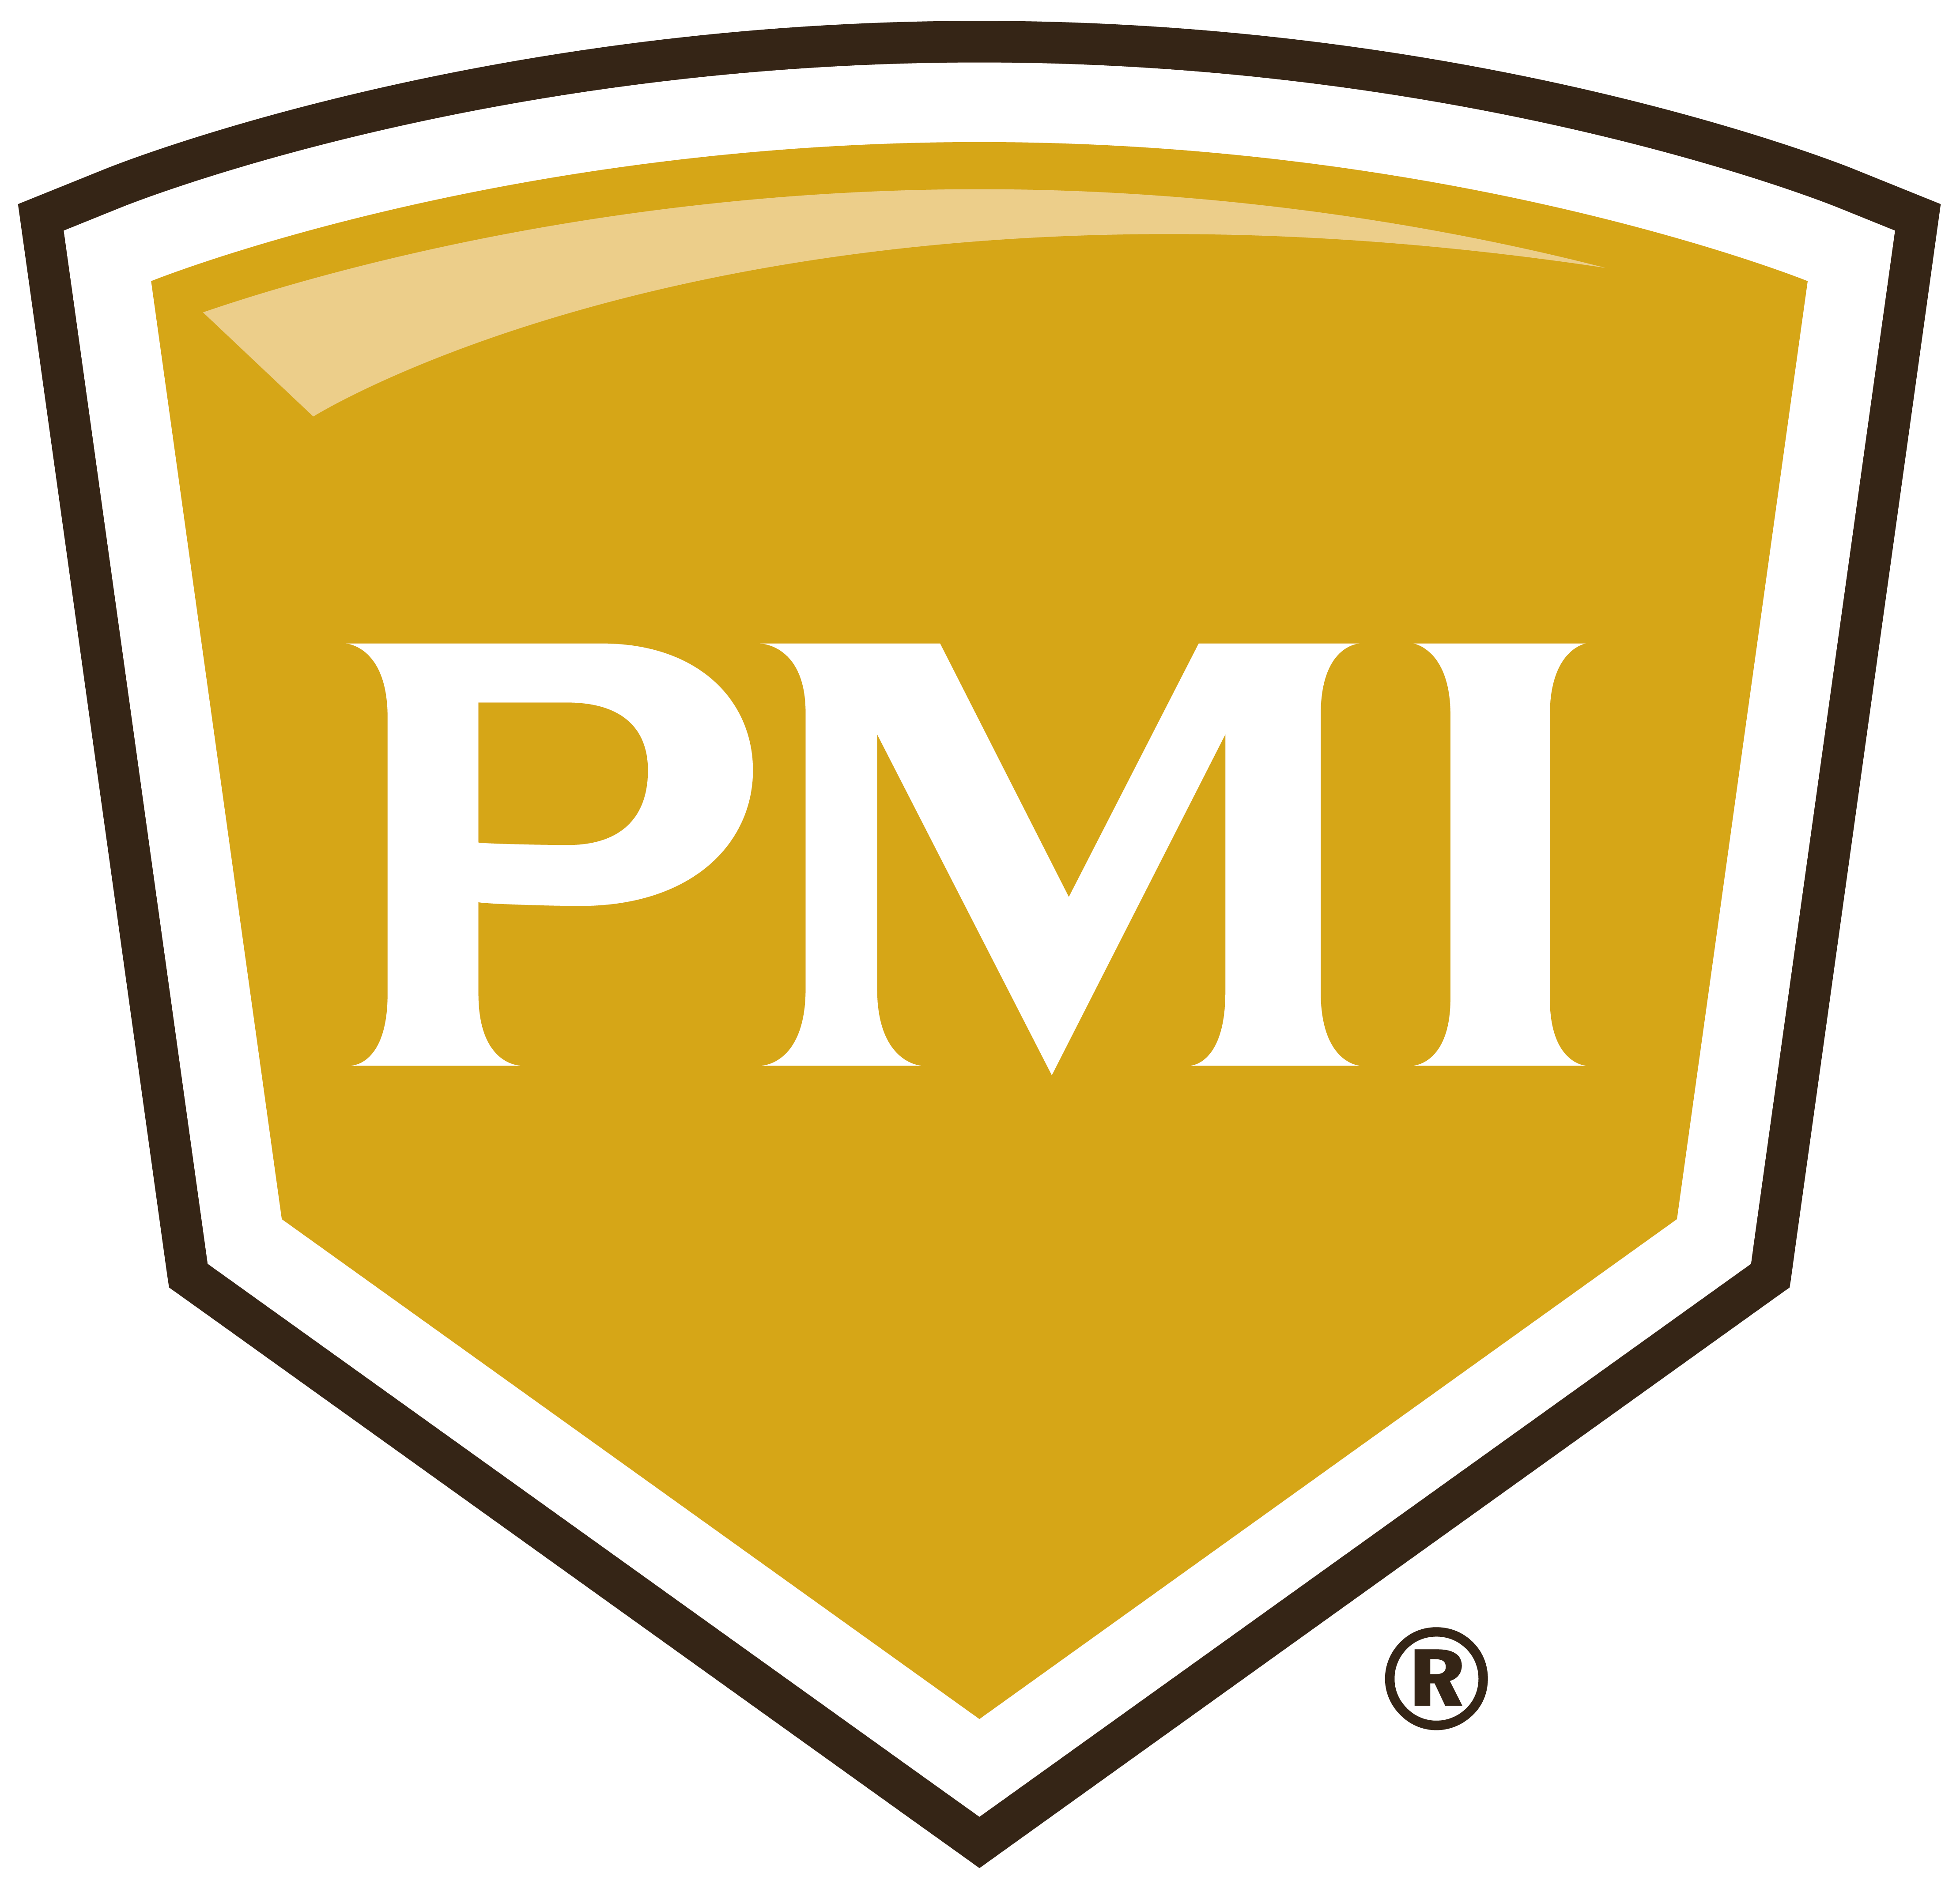 PMI Shield Logo